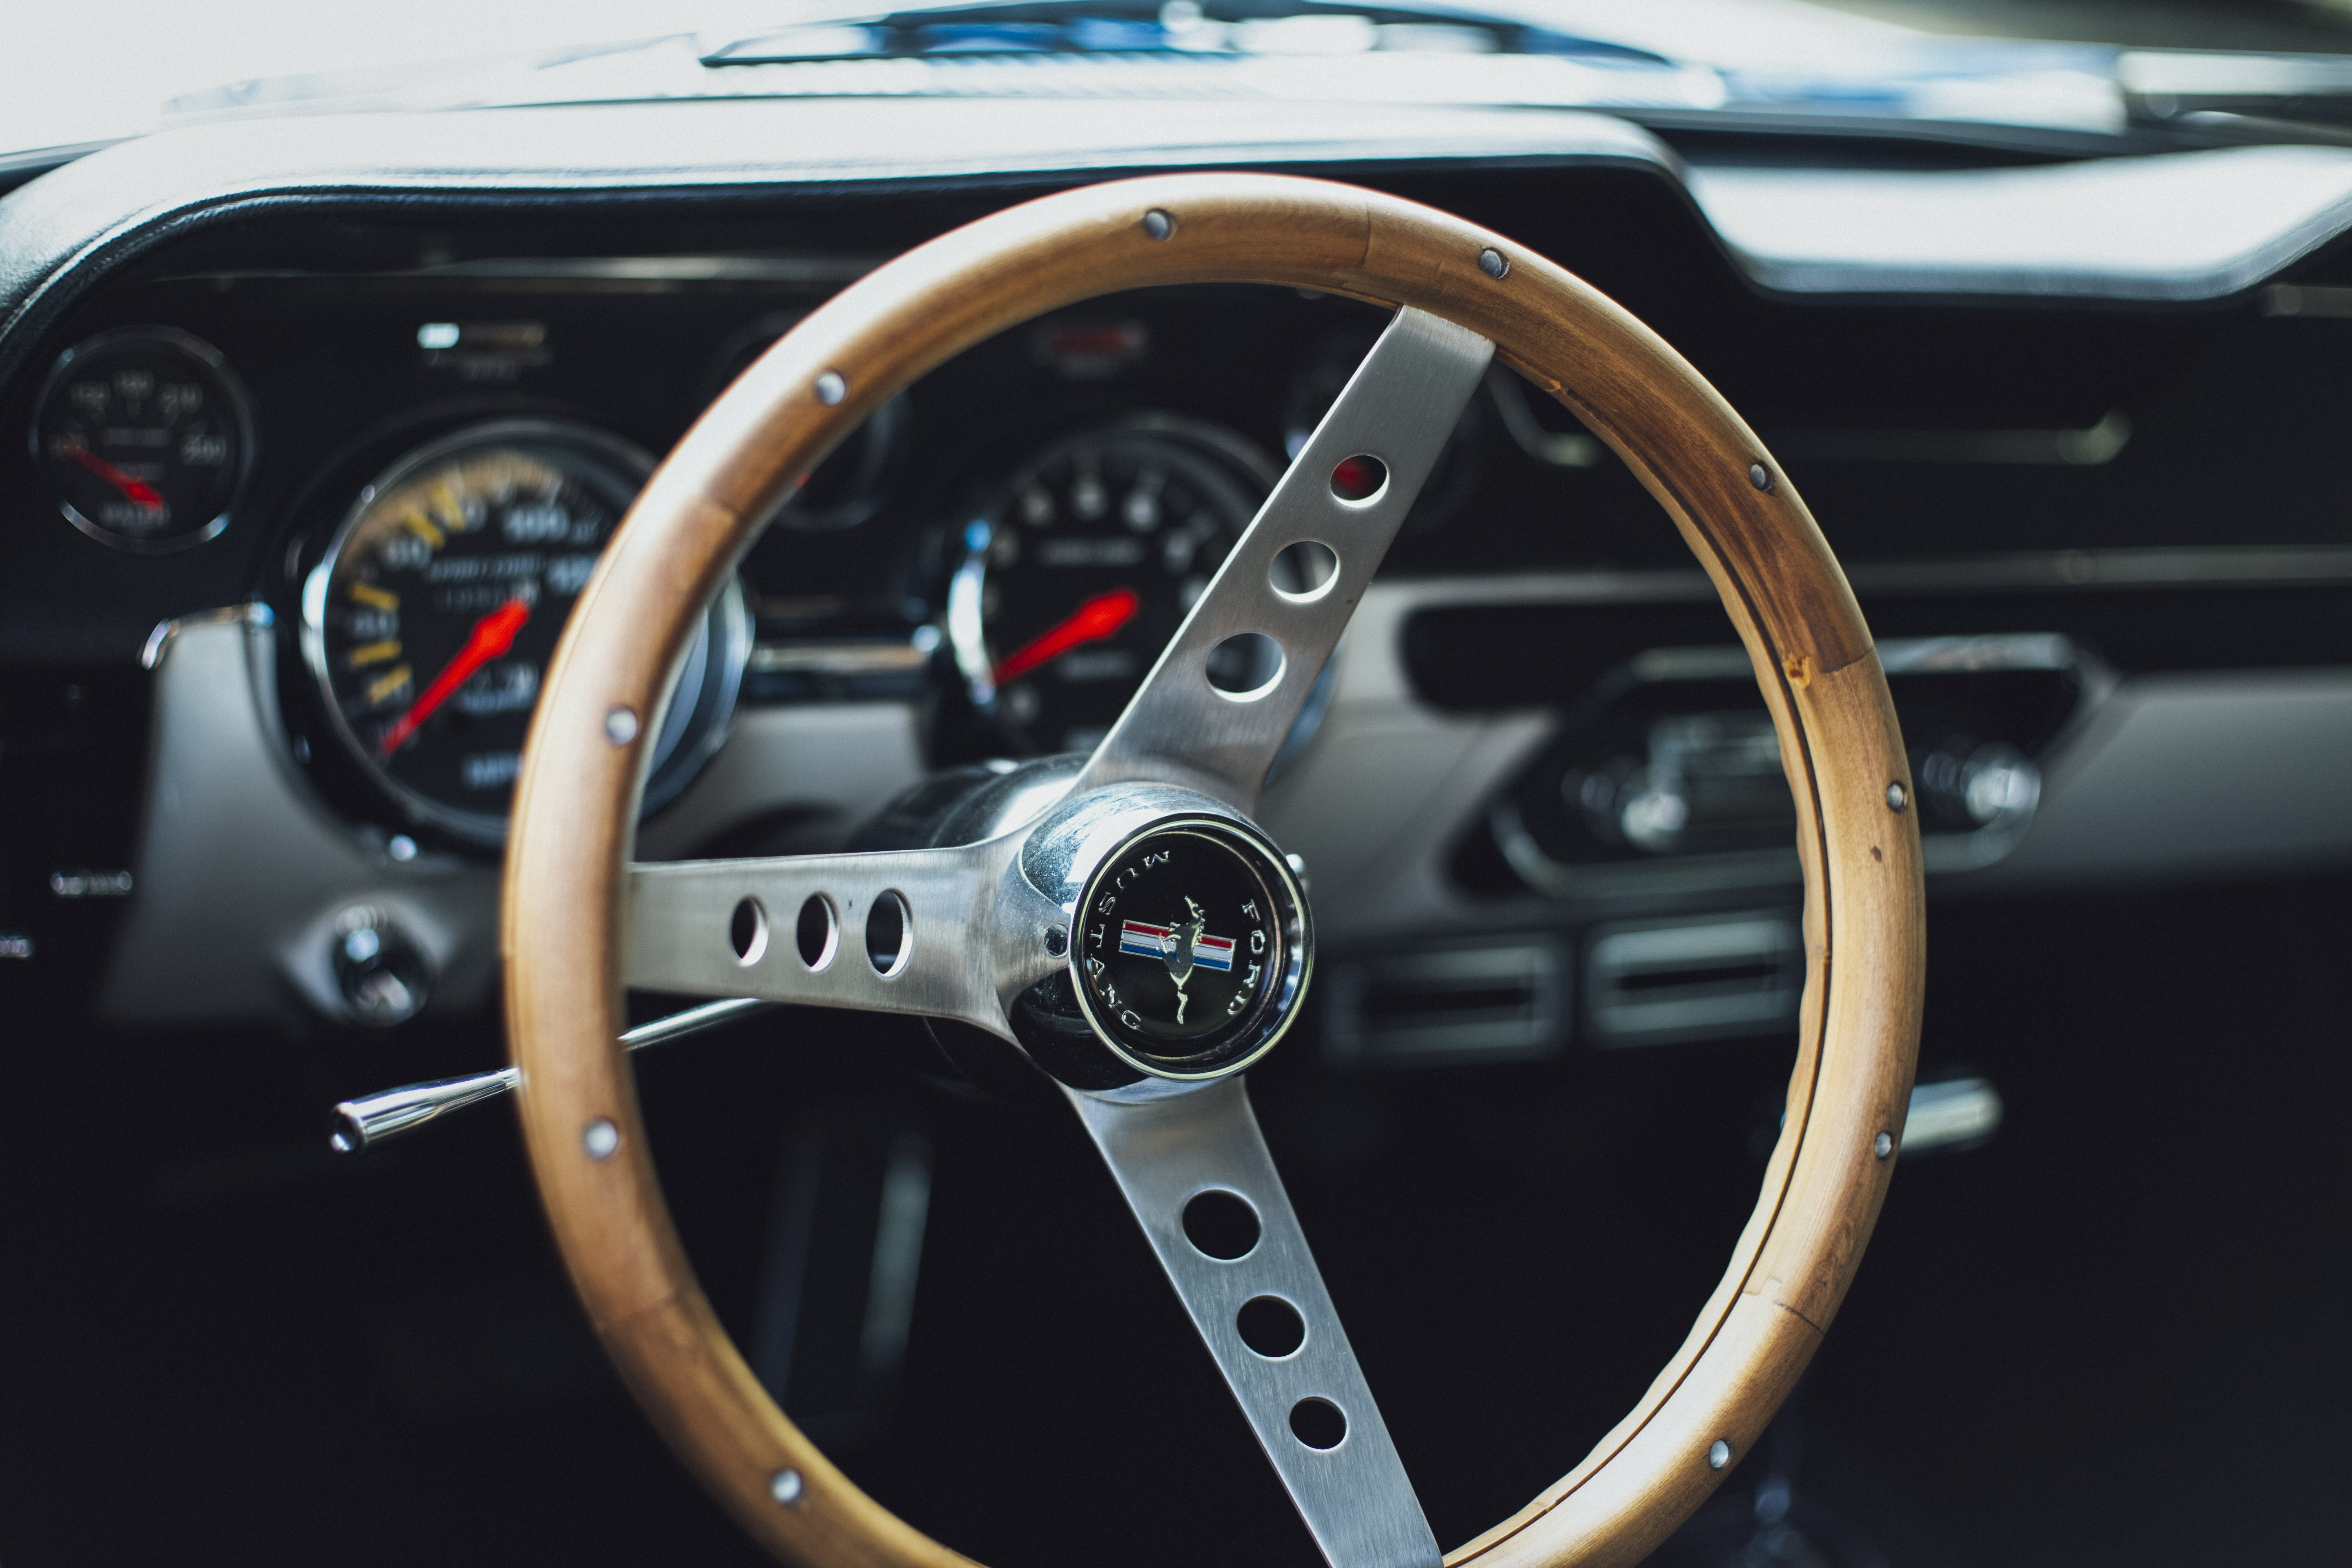 Close-up Photo of Classic Ford Mustang Interior